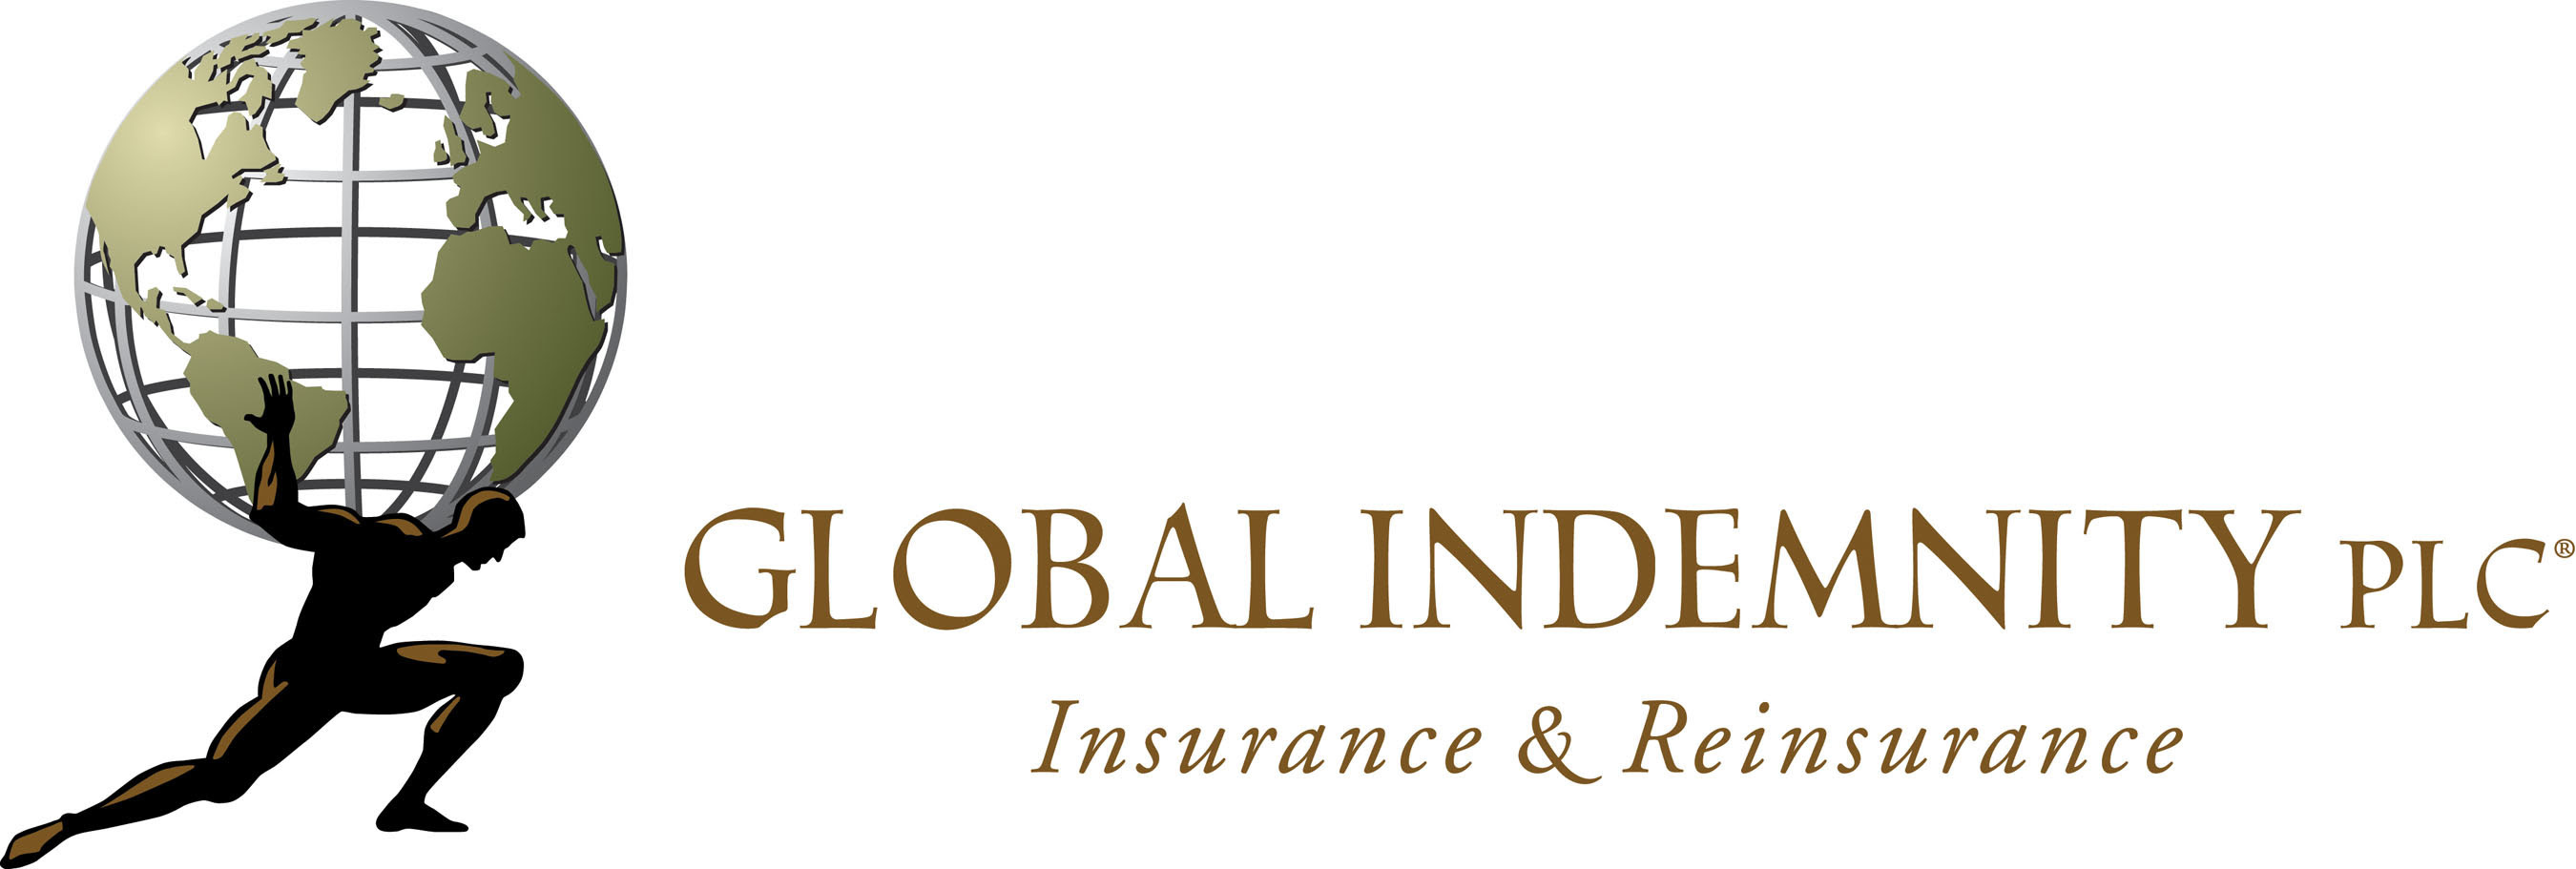 Global Indemnity Purchases American Reliable Insurance Company